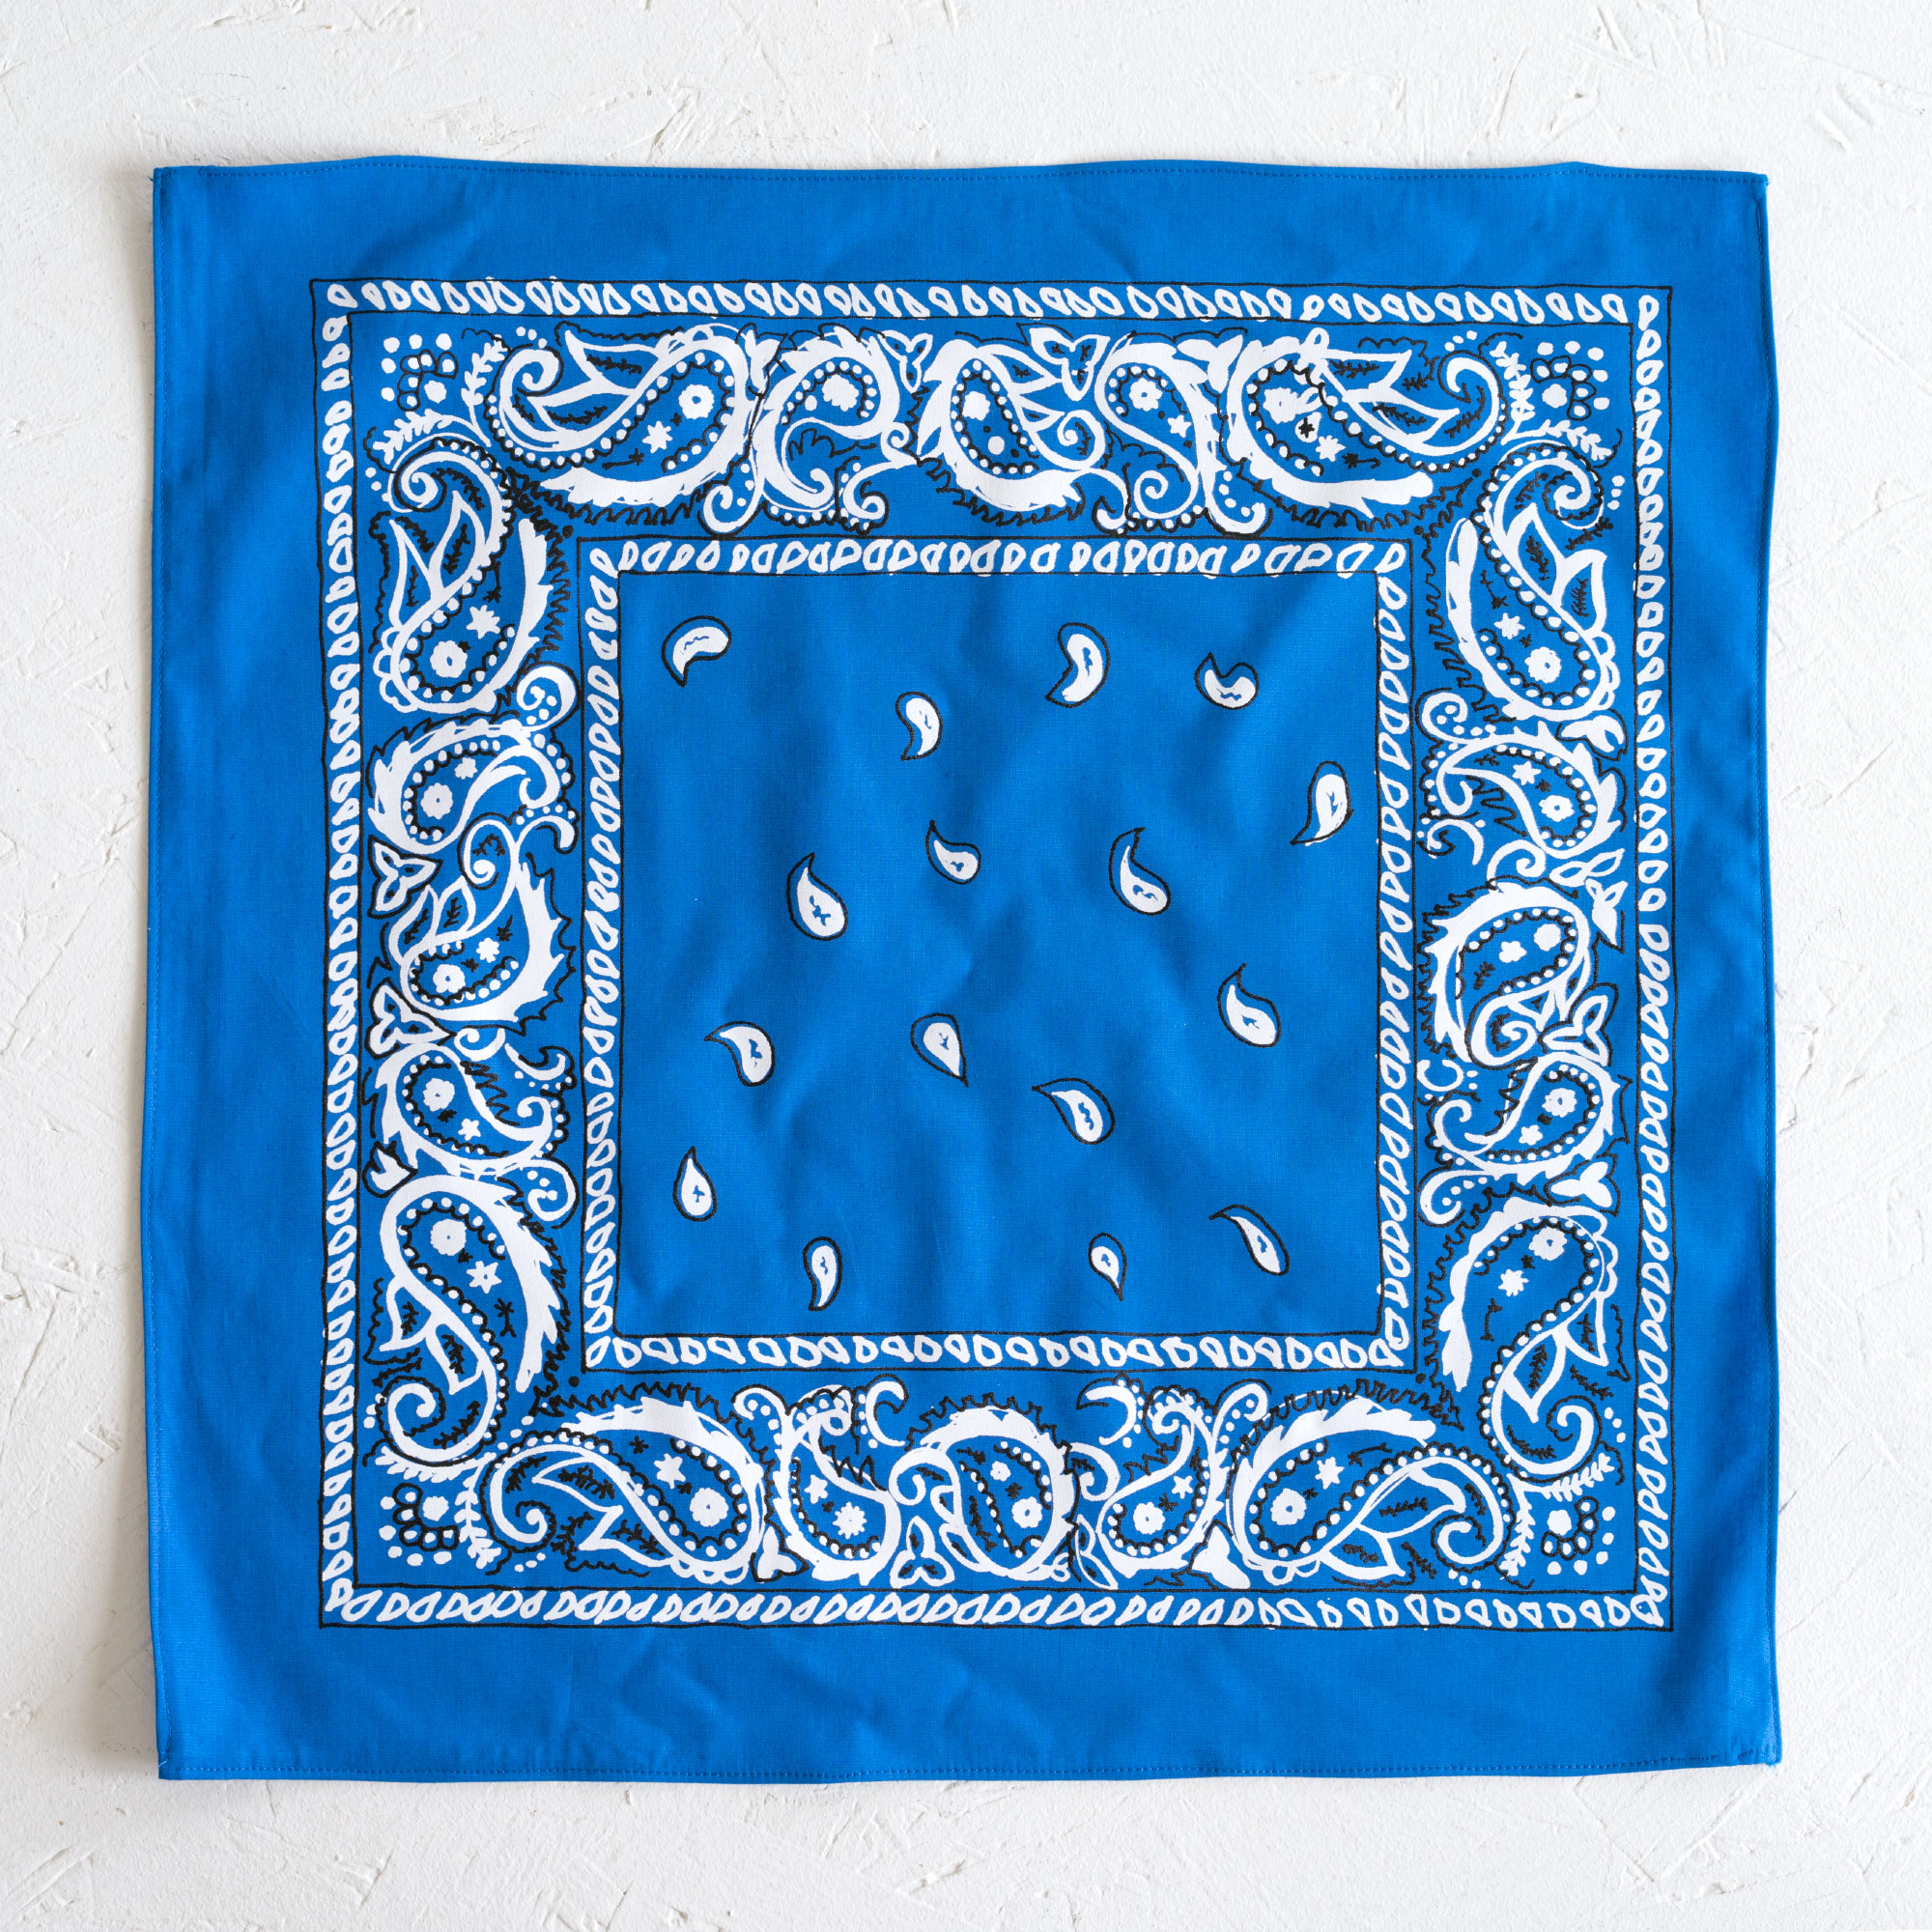 Nancy Davidson, *Hanky Code* (Medium Blue), 2016, Two color silkscreen on hand cut & sewn cotton, 17 x 17 inches (43.18 x 43.18 cm)